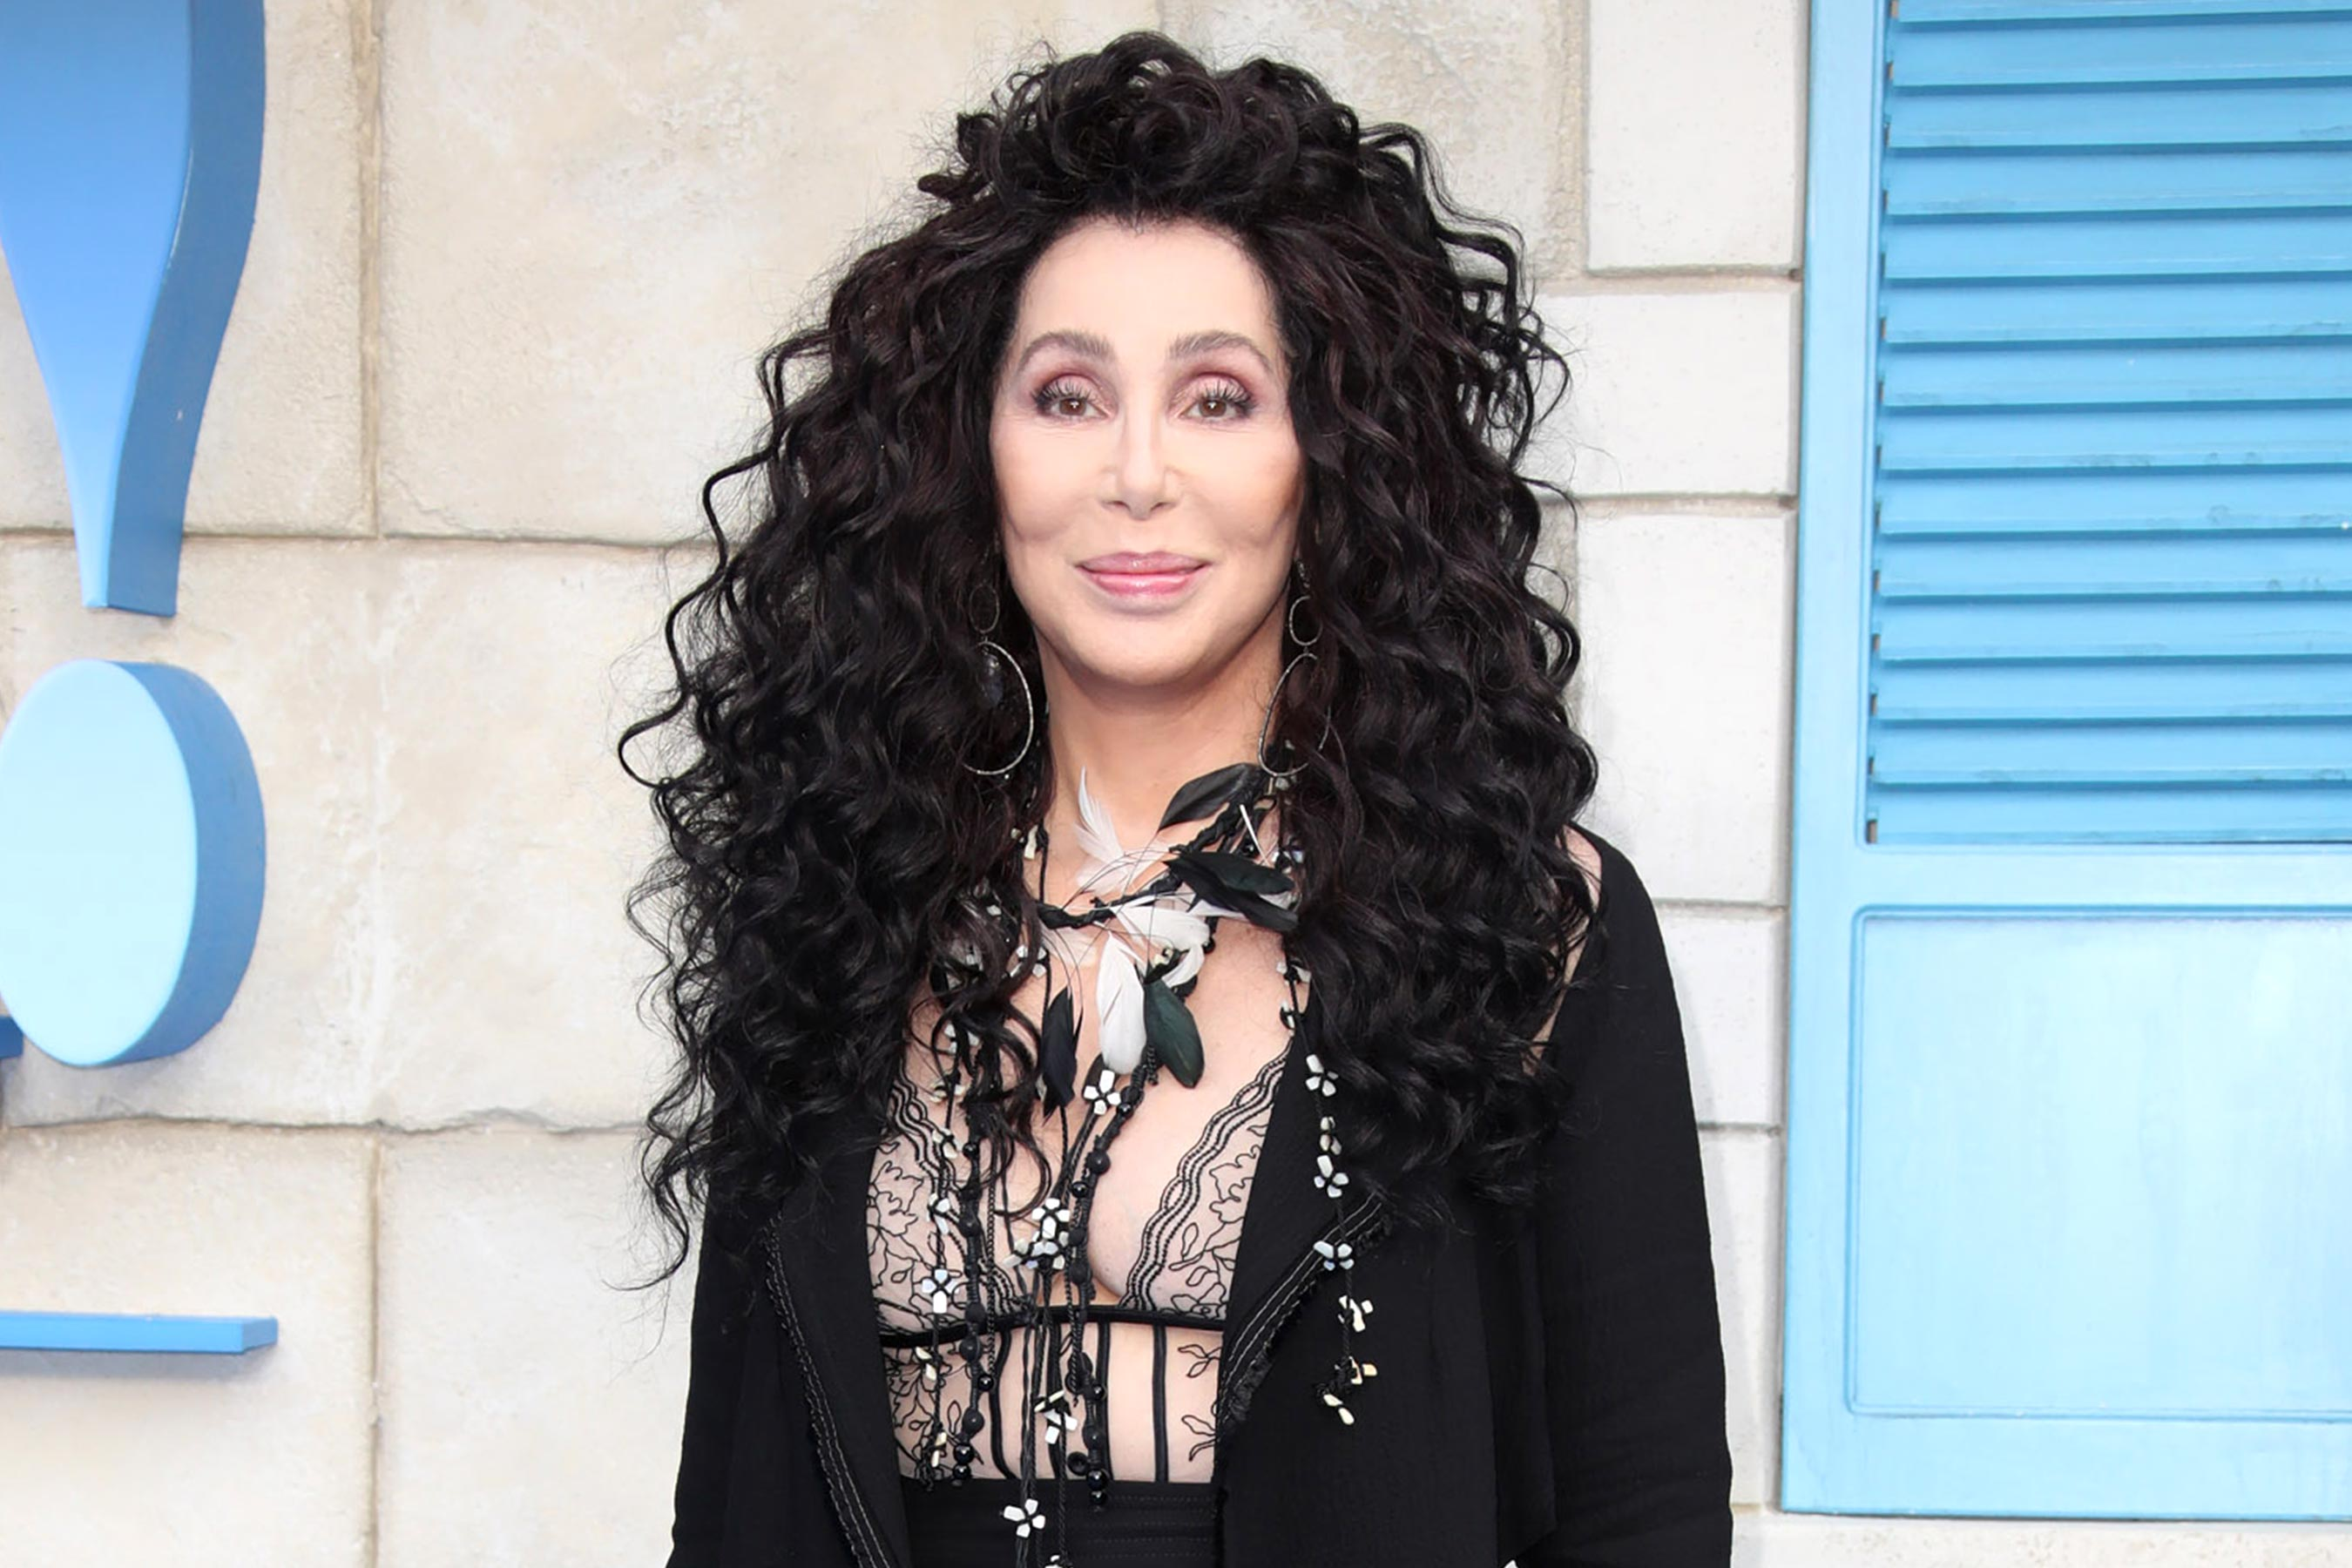 Cher announces shes writing her life story, book to publish in 2020 6